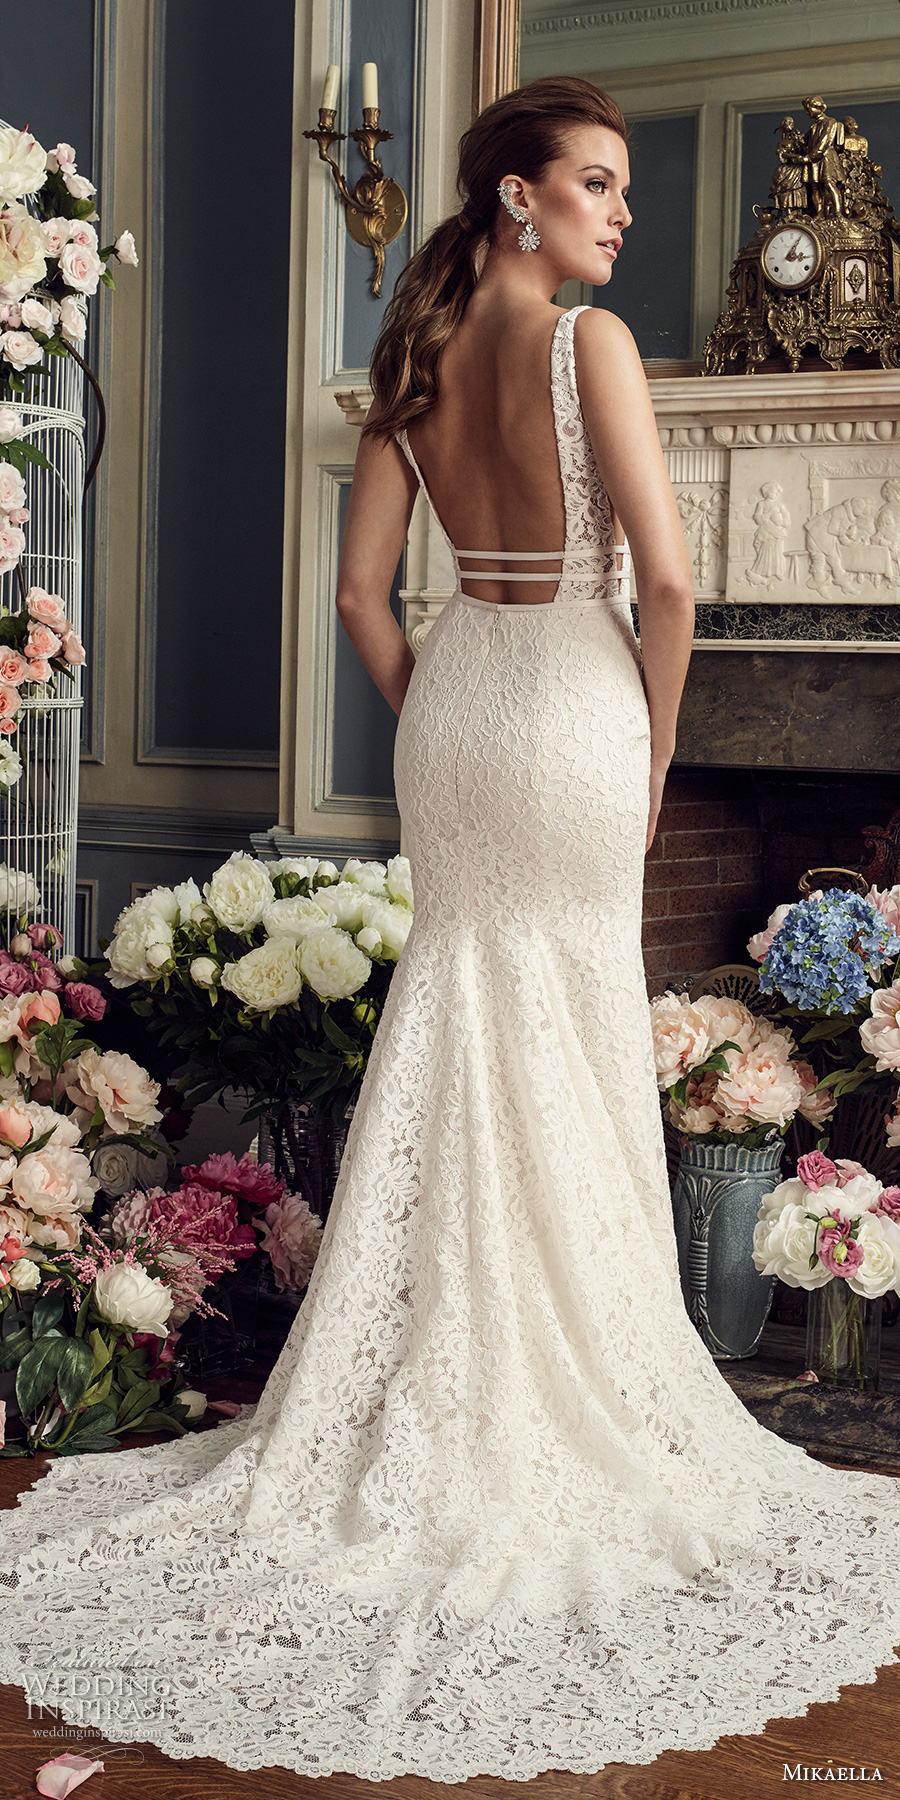 mikaella fall 2017 bridal sleeveless deep plunging sweetheart neckline full embellishment elegant fit and flare wedding dress open square back medium train (2154) bv